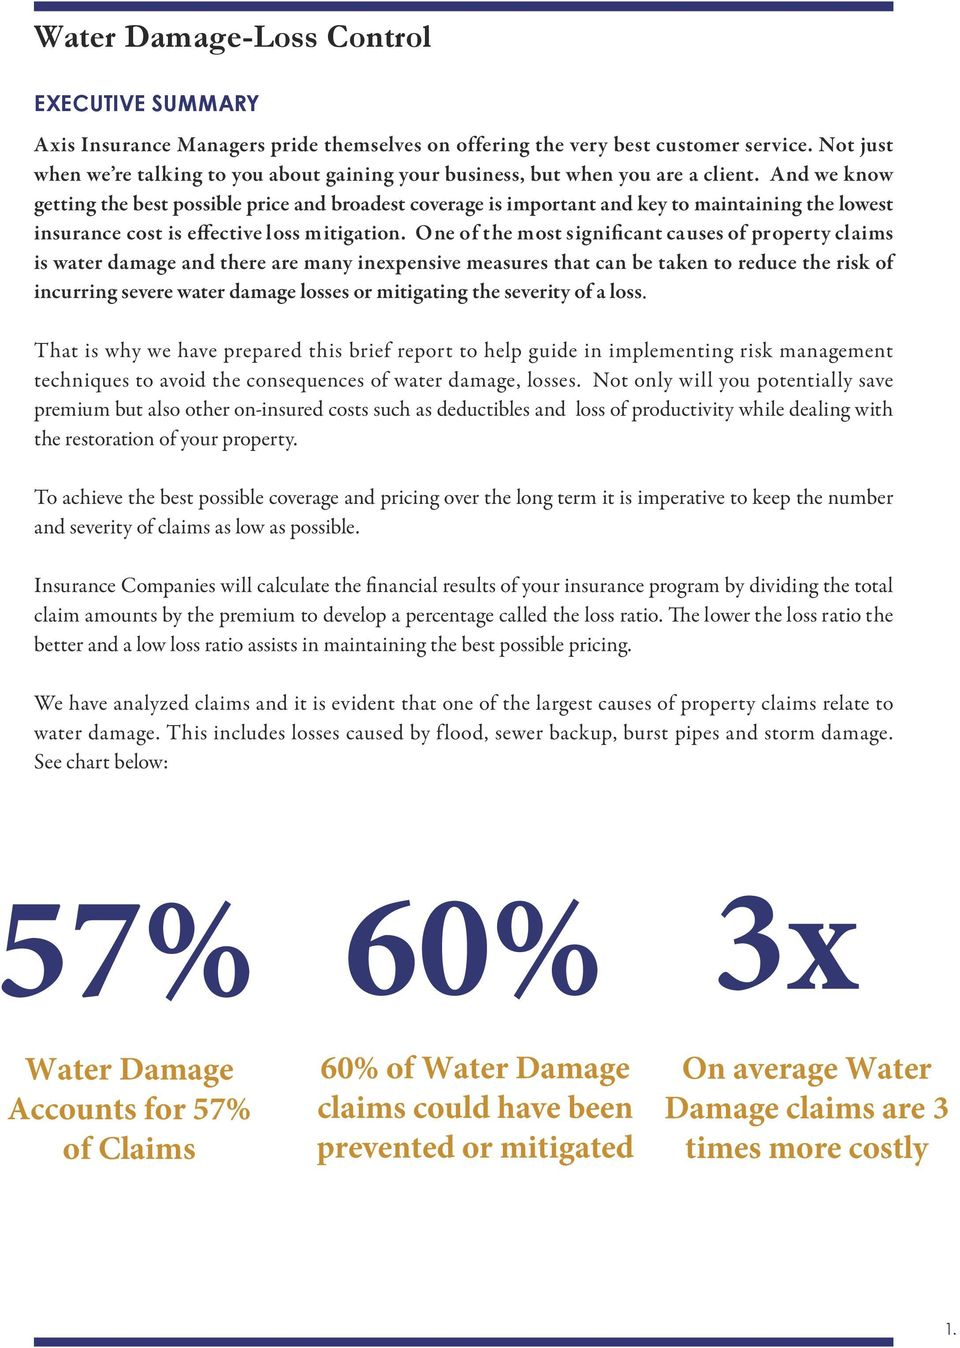 One of the most significant causes of property claims is water damage and there are many inexpensive measures that can be taken to reduce the risk of incurring severe water damage losses or